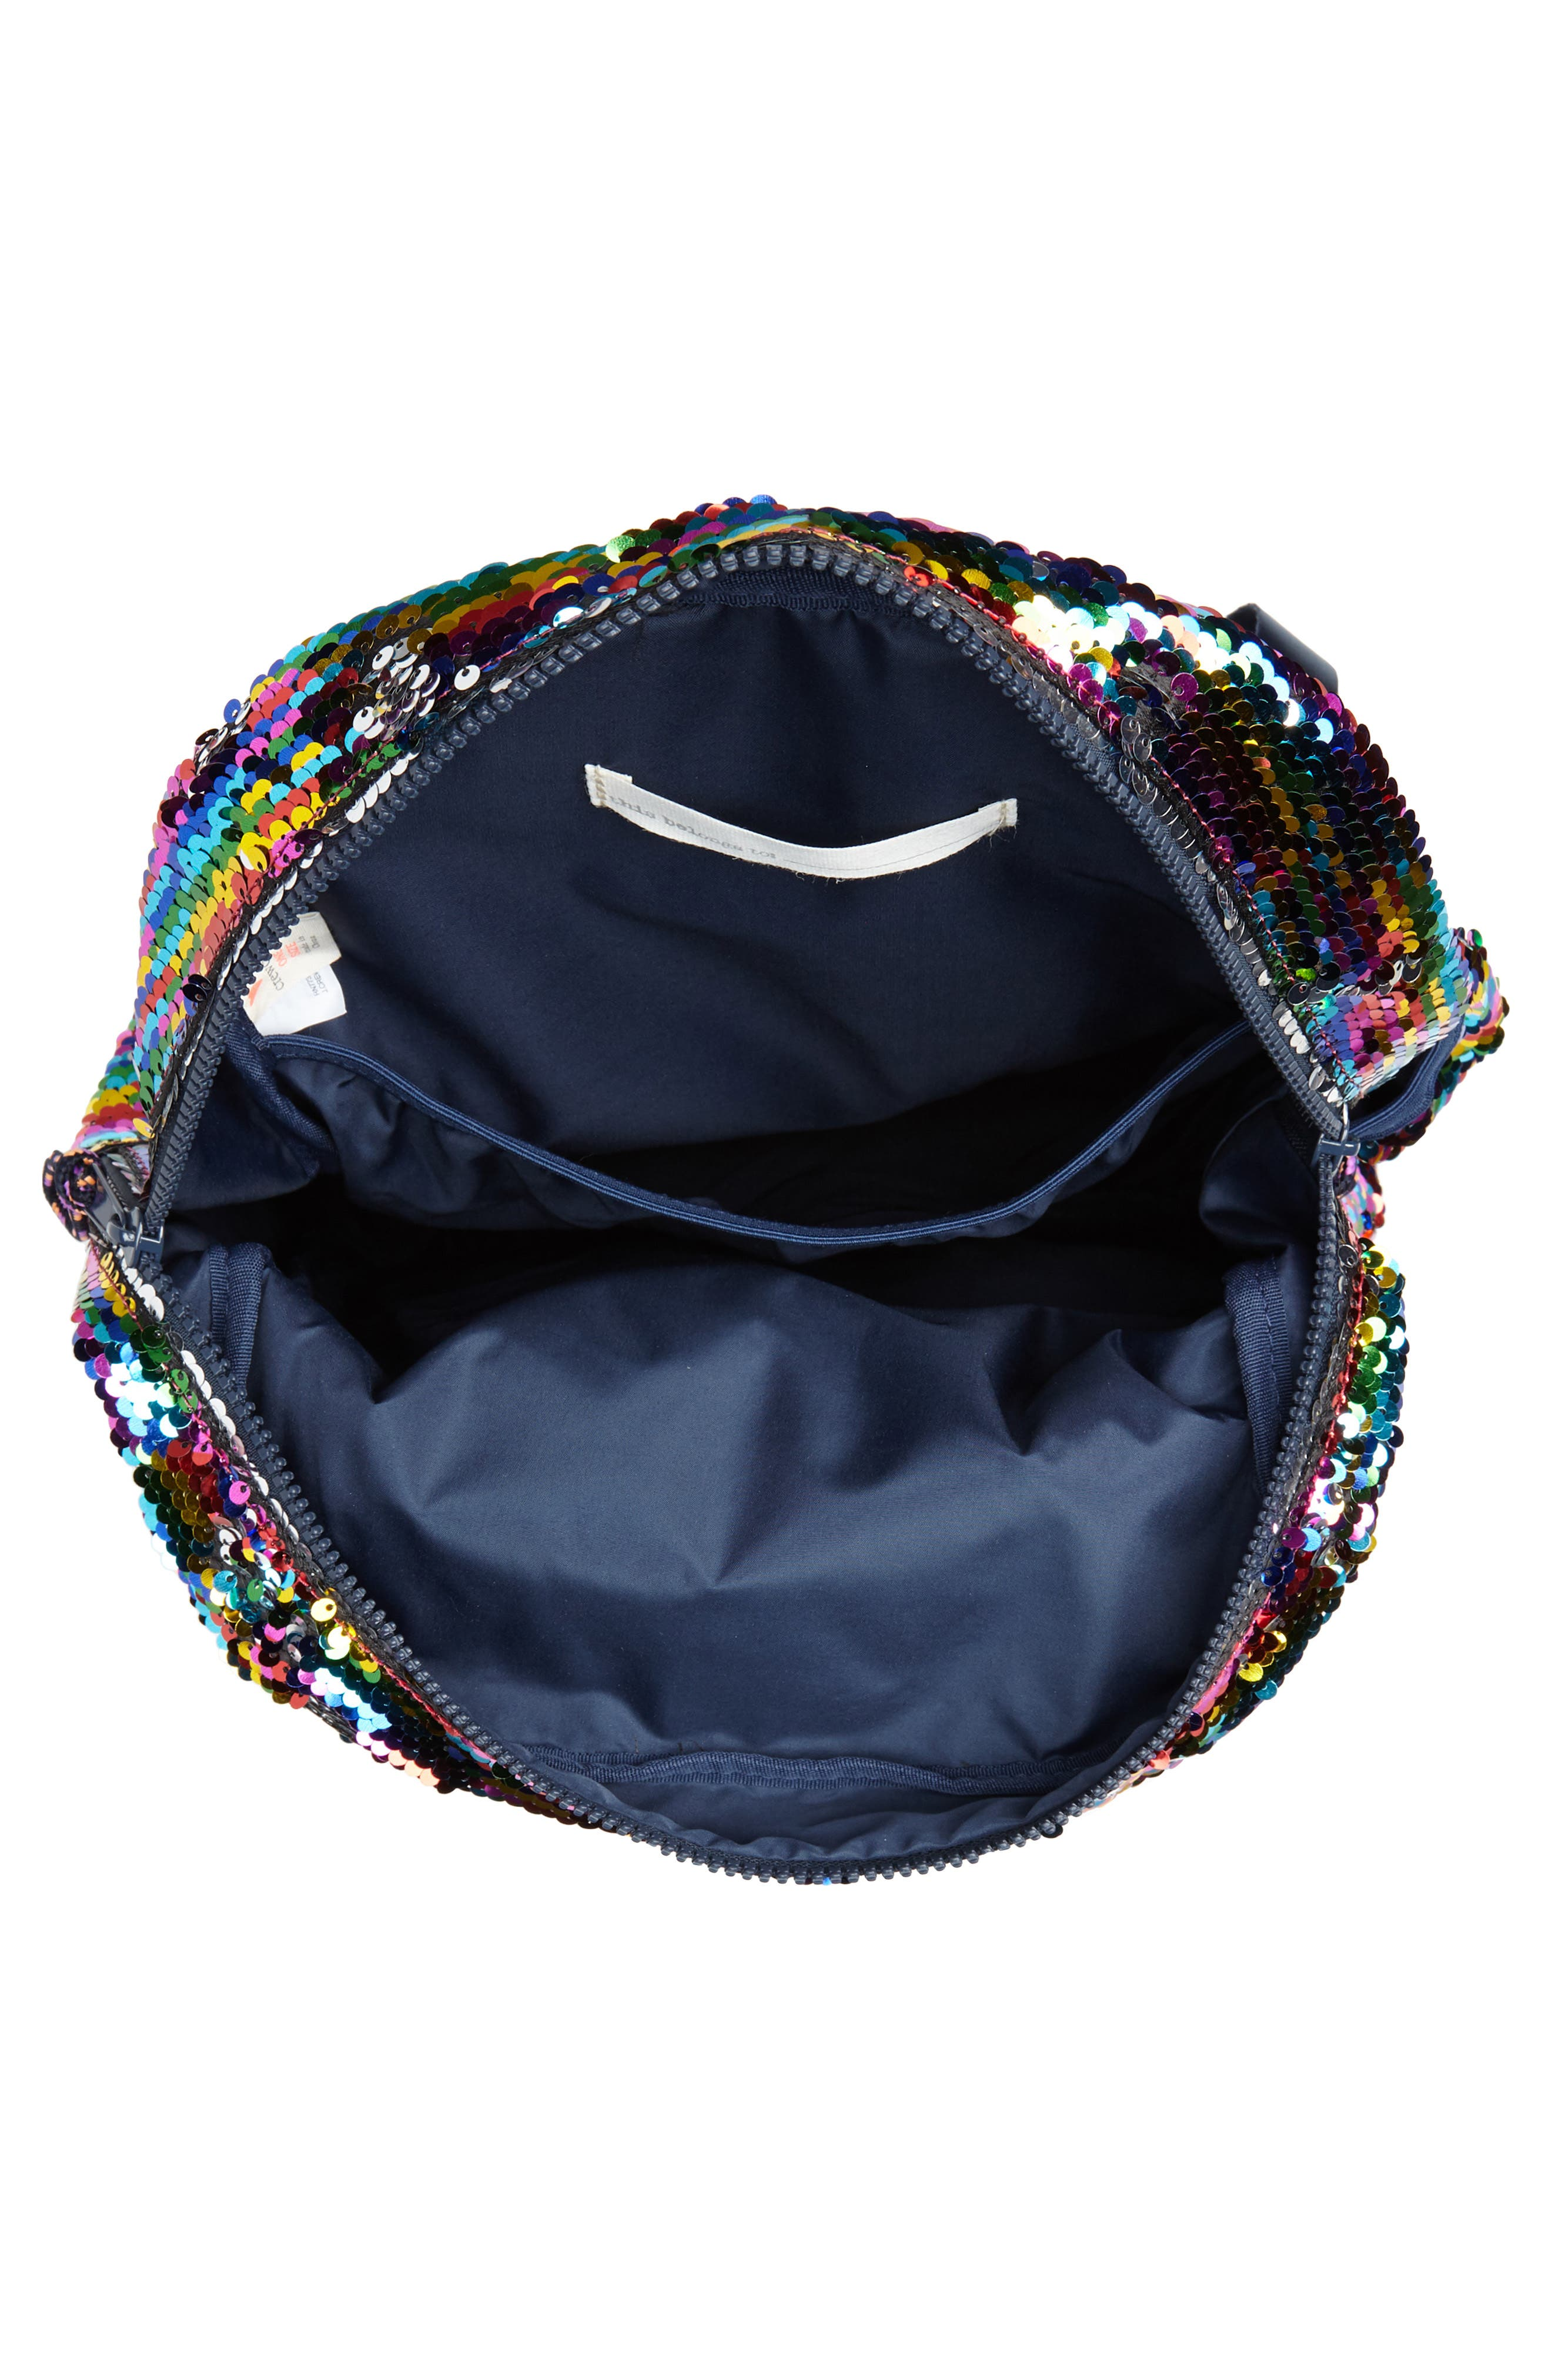 Sequin Backpack,                             Alternate thumbnail 3, color,                             965